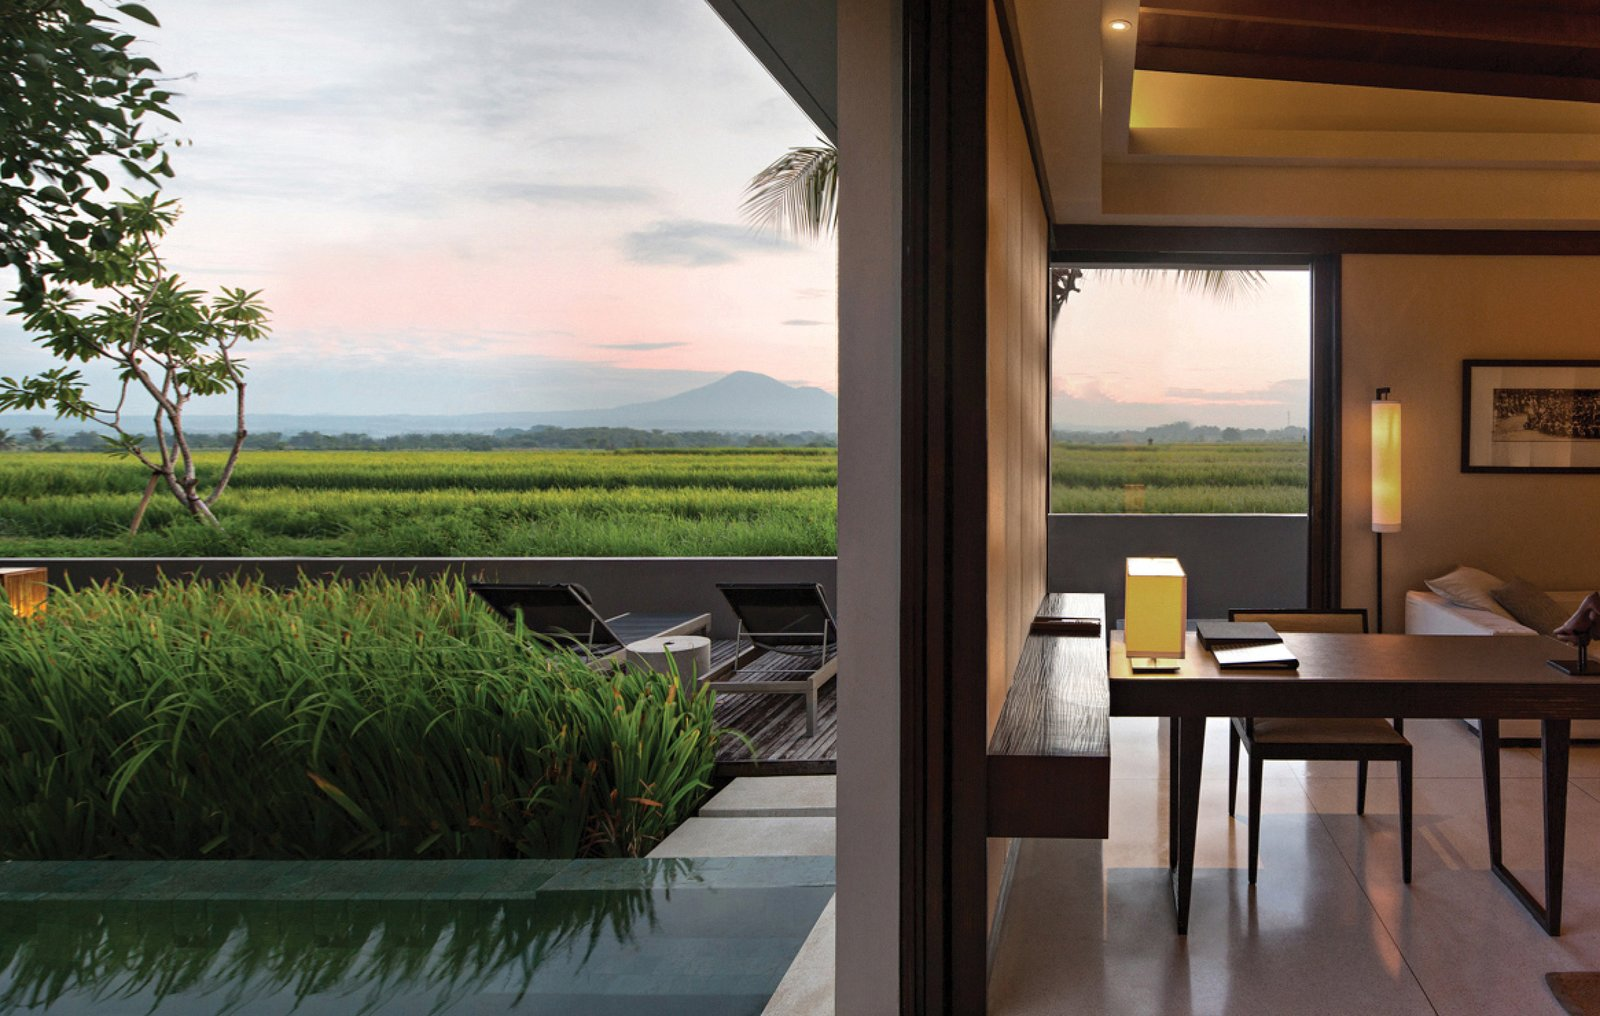 Outdoor, Infinity Pools, Tubs, Shower, Trees, Wood Patio, Porch, Deck, Shrubs, Back Yard, Swimming Pools, Tubs, Shower, and Large Pools, Tubs, Shower  Photo 5 of 9 in A Modern Bali Resort That's Inspired by the Local Landscape and Culture